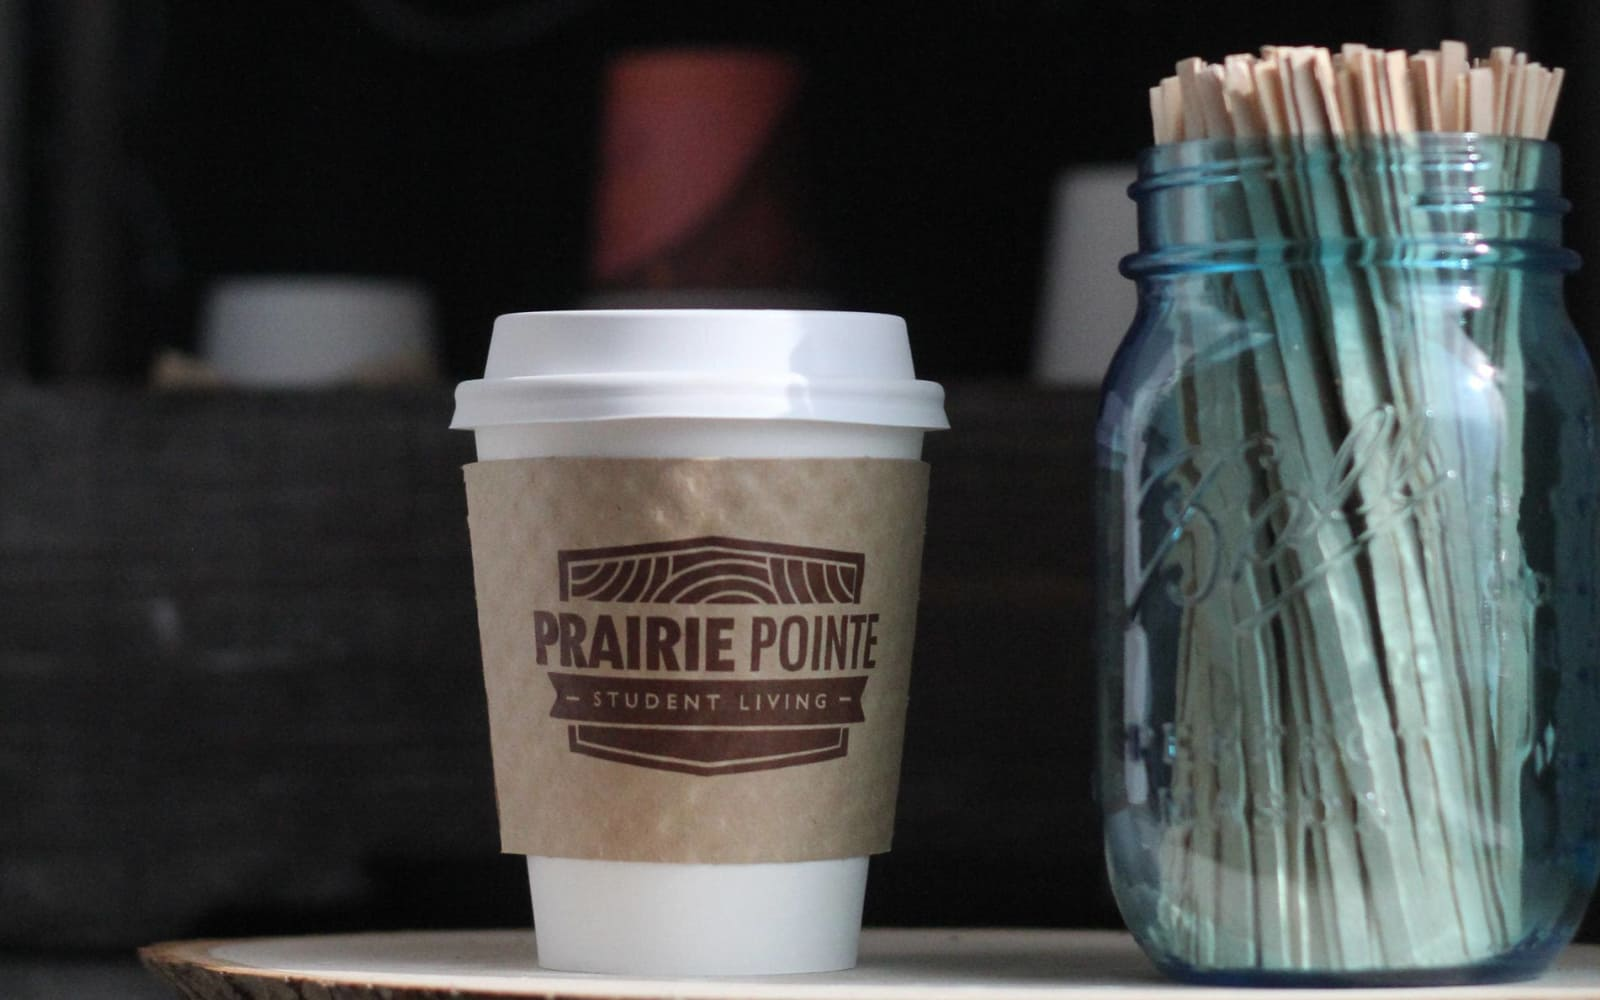 Coffee from Prairie Pointe Student Living in Ankeny, Iowa